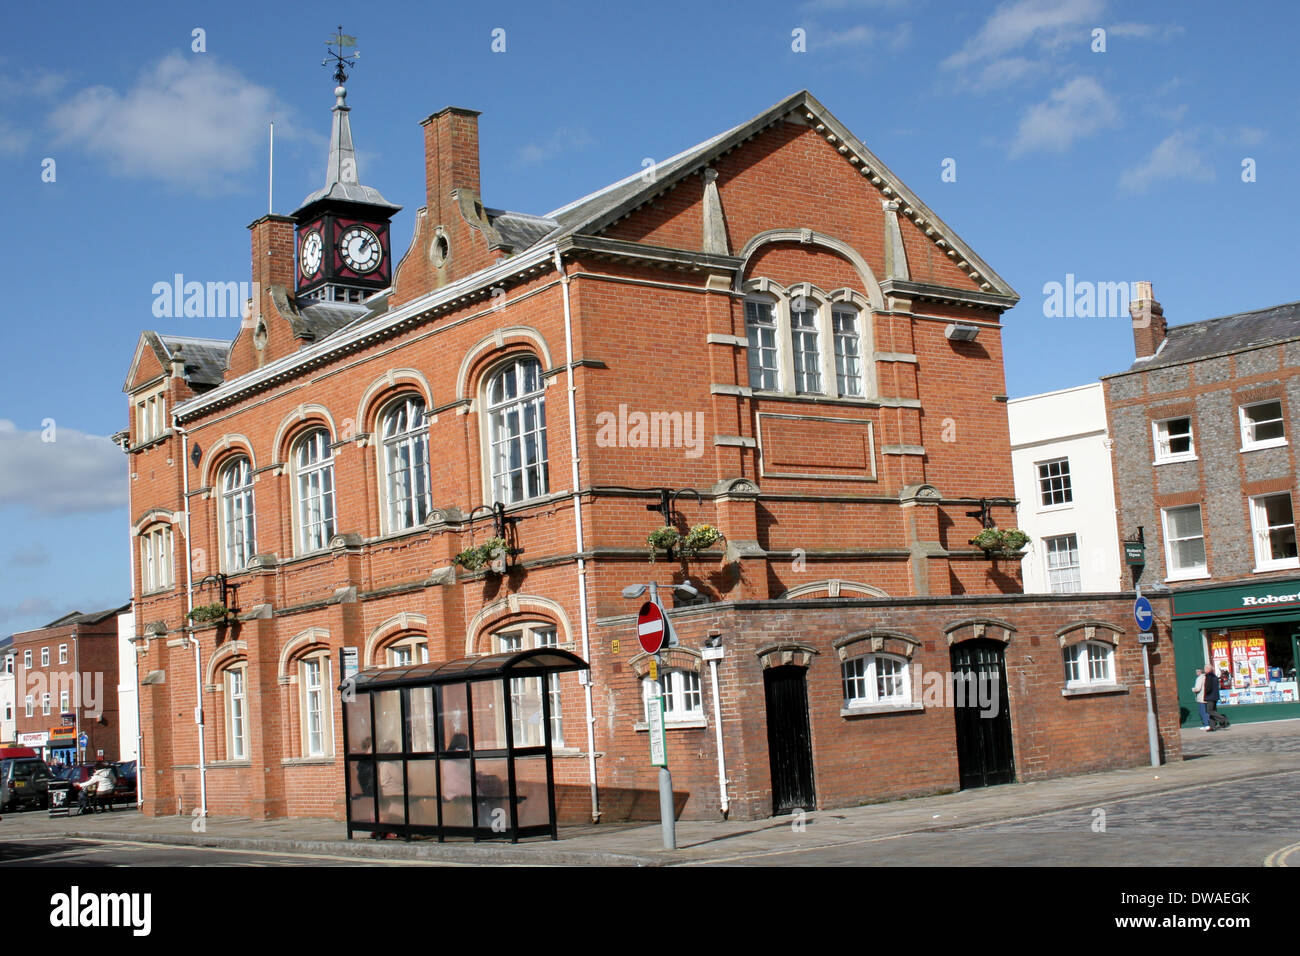 The Town Hall in Thame Oxfordshire. - Stock Image